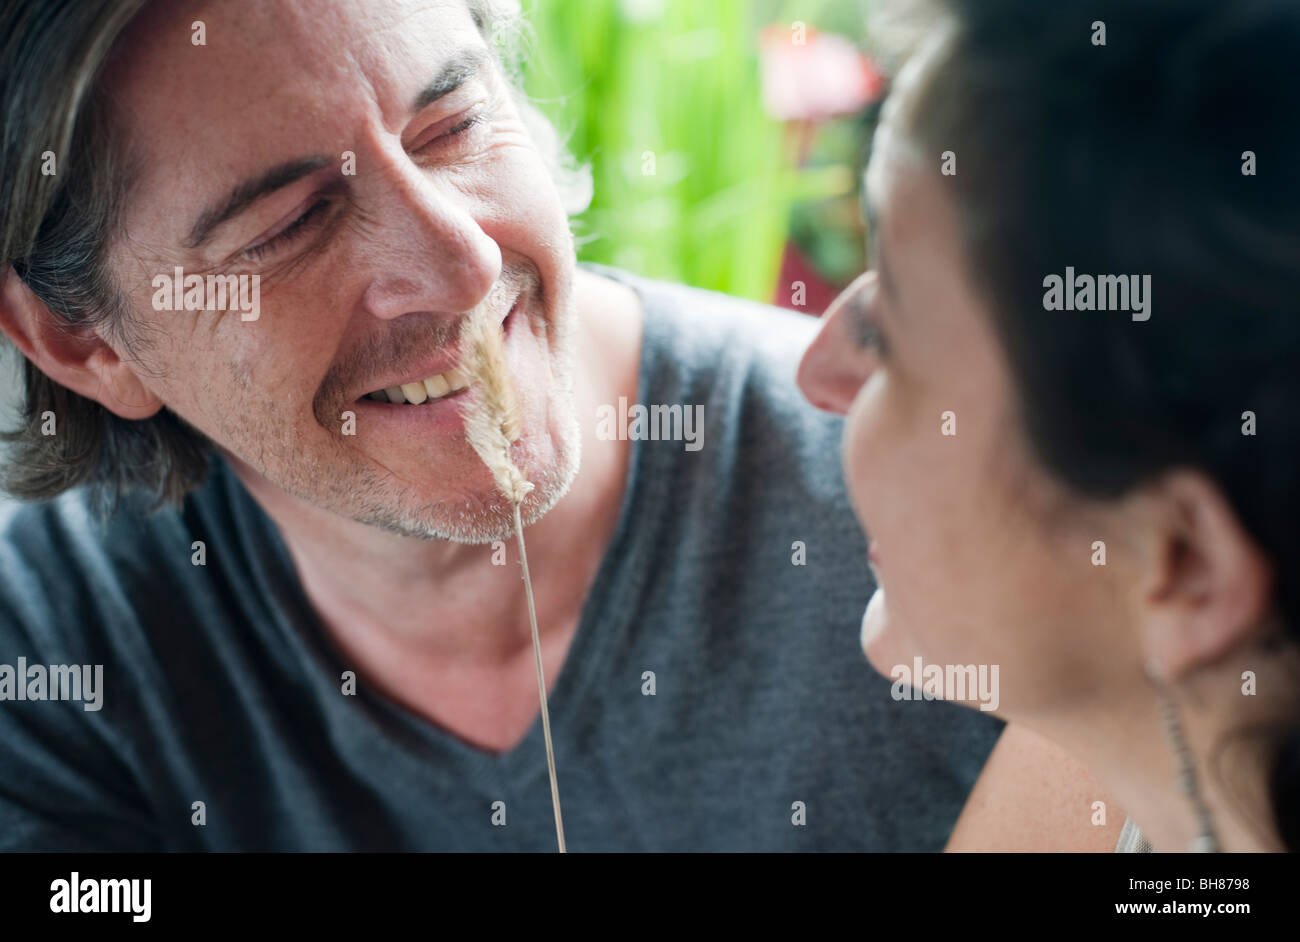 man & woman playing with grass stalk - Stock Image